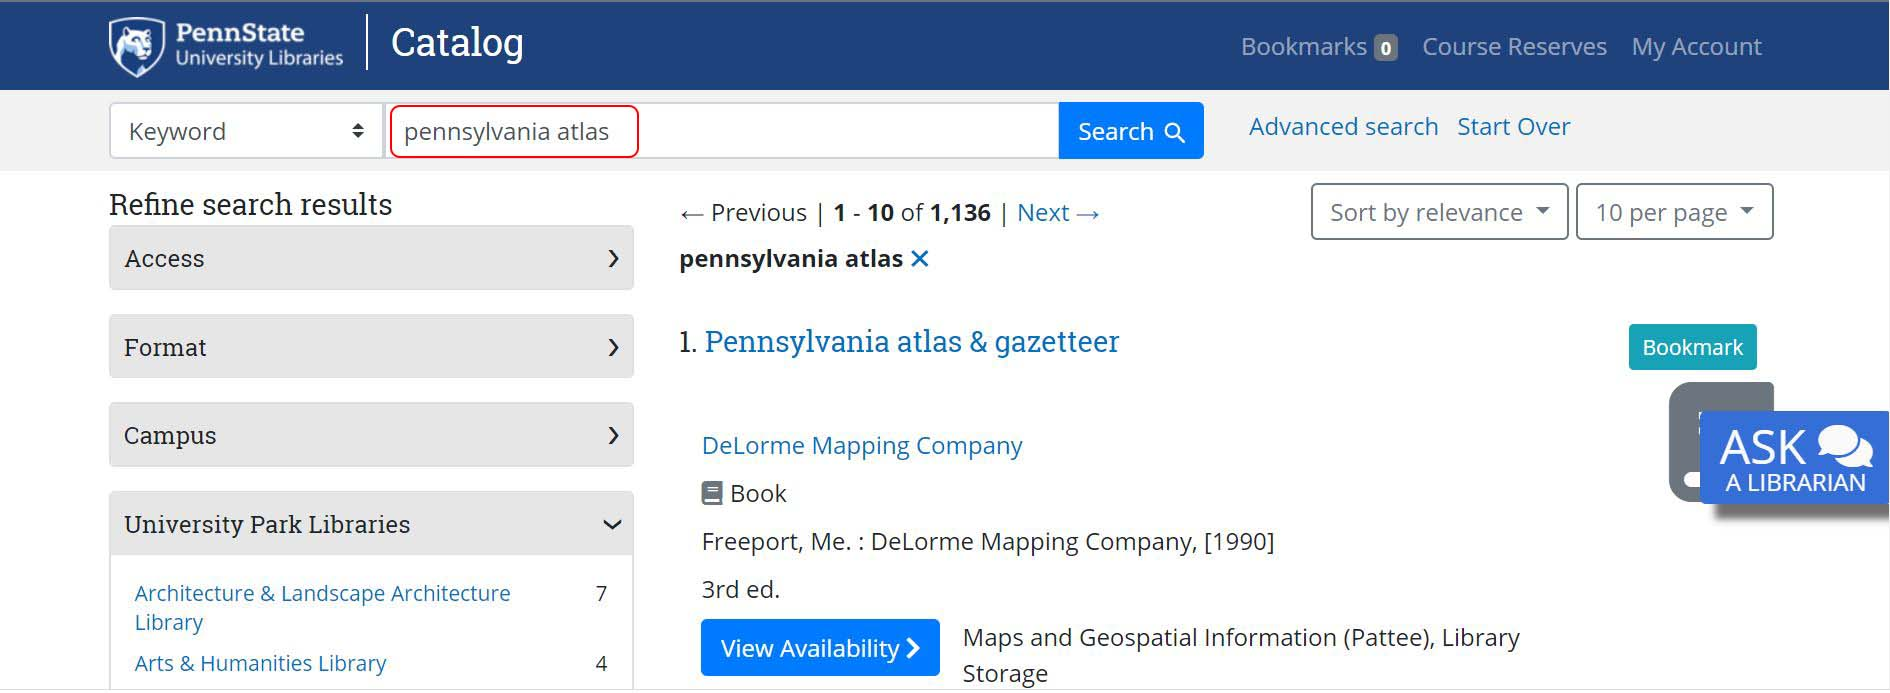 image searching the catalog for Pennsylvania atlas